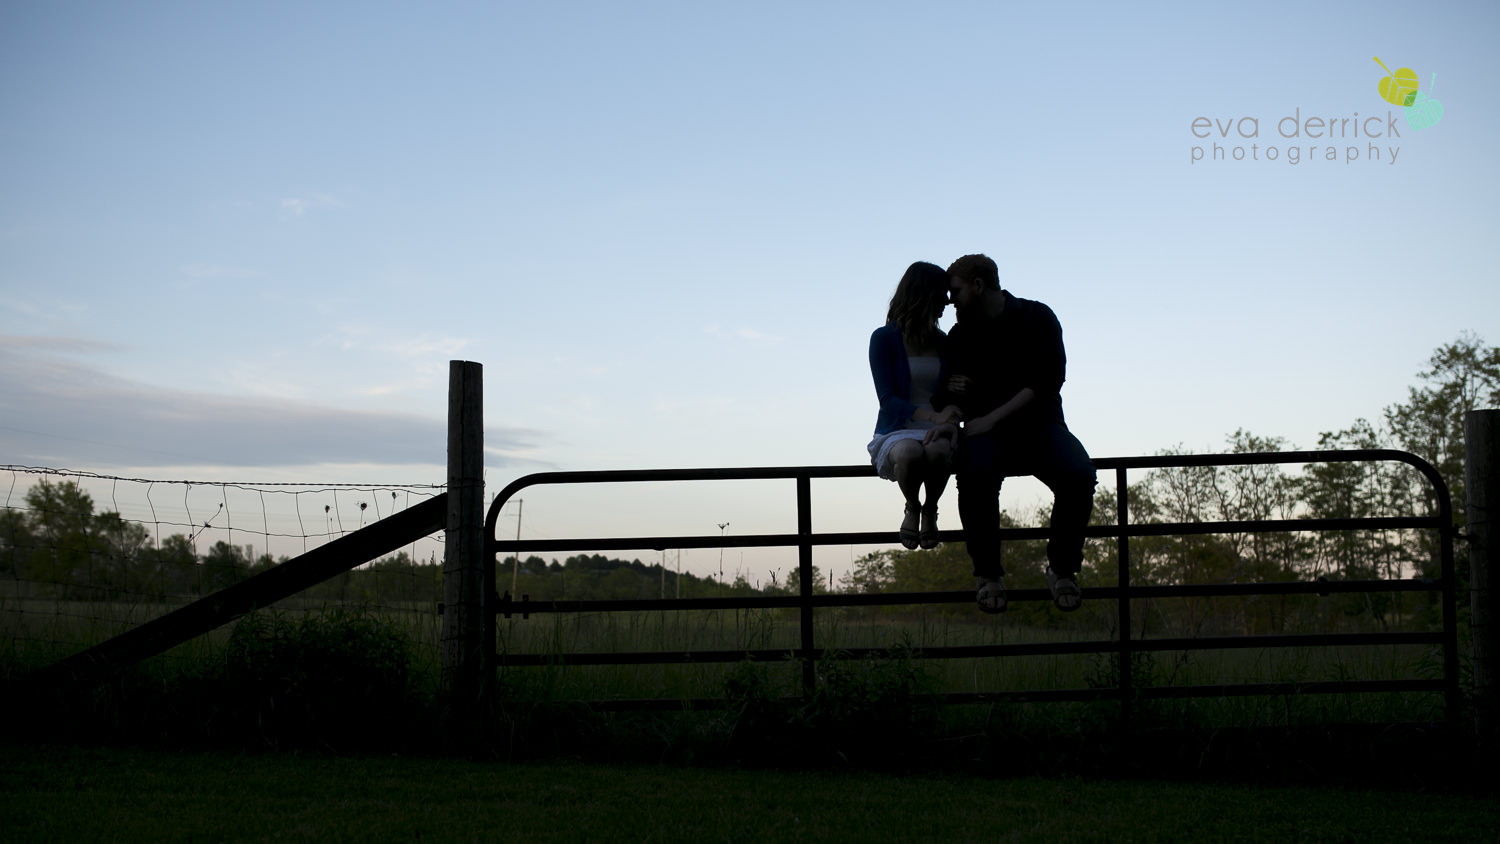 Millgrove-Photographer-Millgrove-Engagement-Session-photography-by-Eva-Derrick-Photography-012.JPG